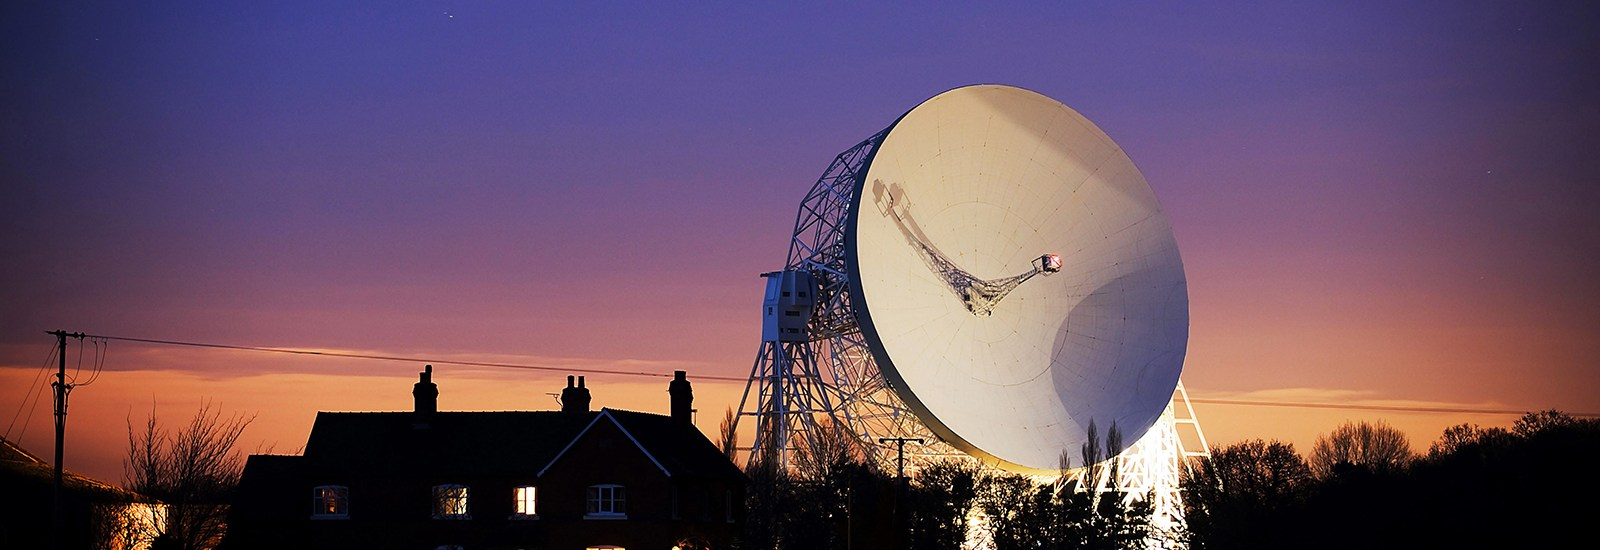 Lovell Telescope at Jodrell Bank Observatory